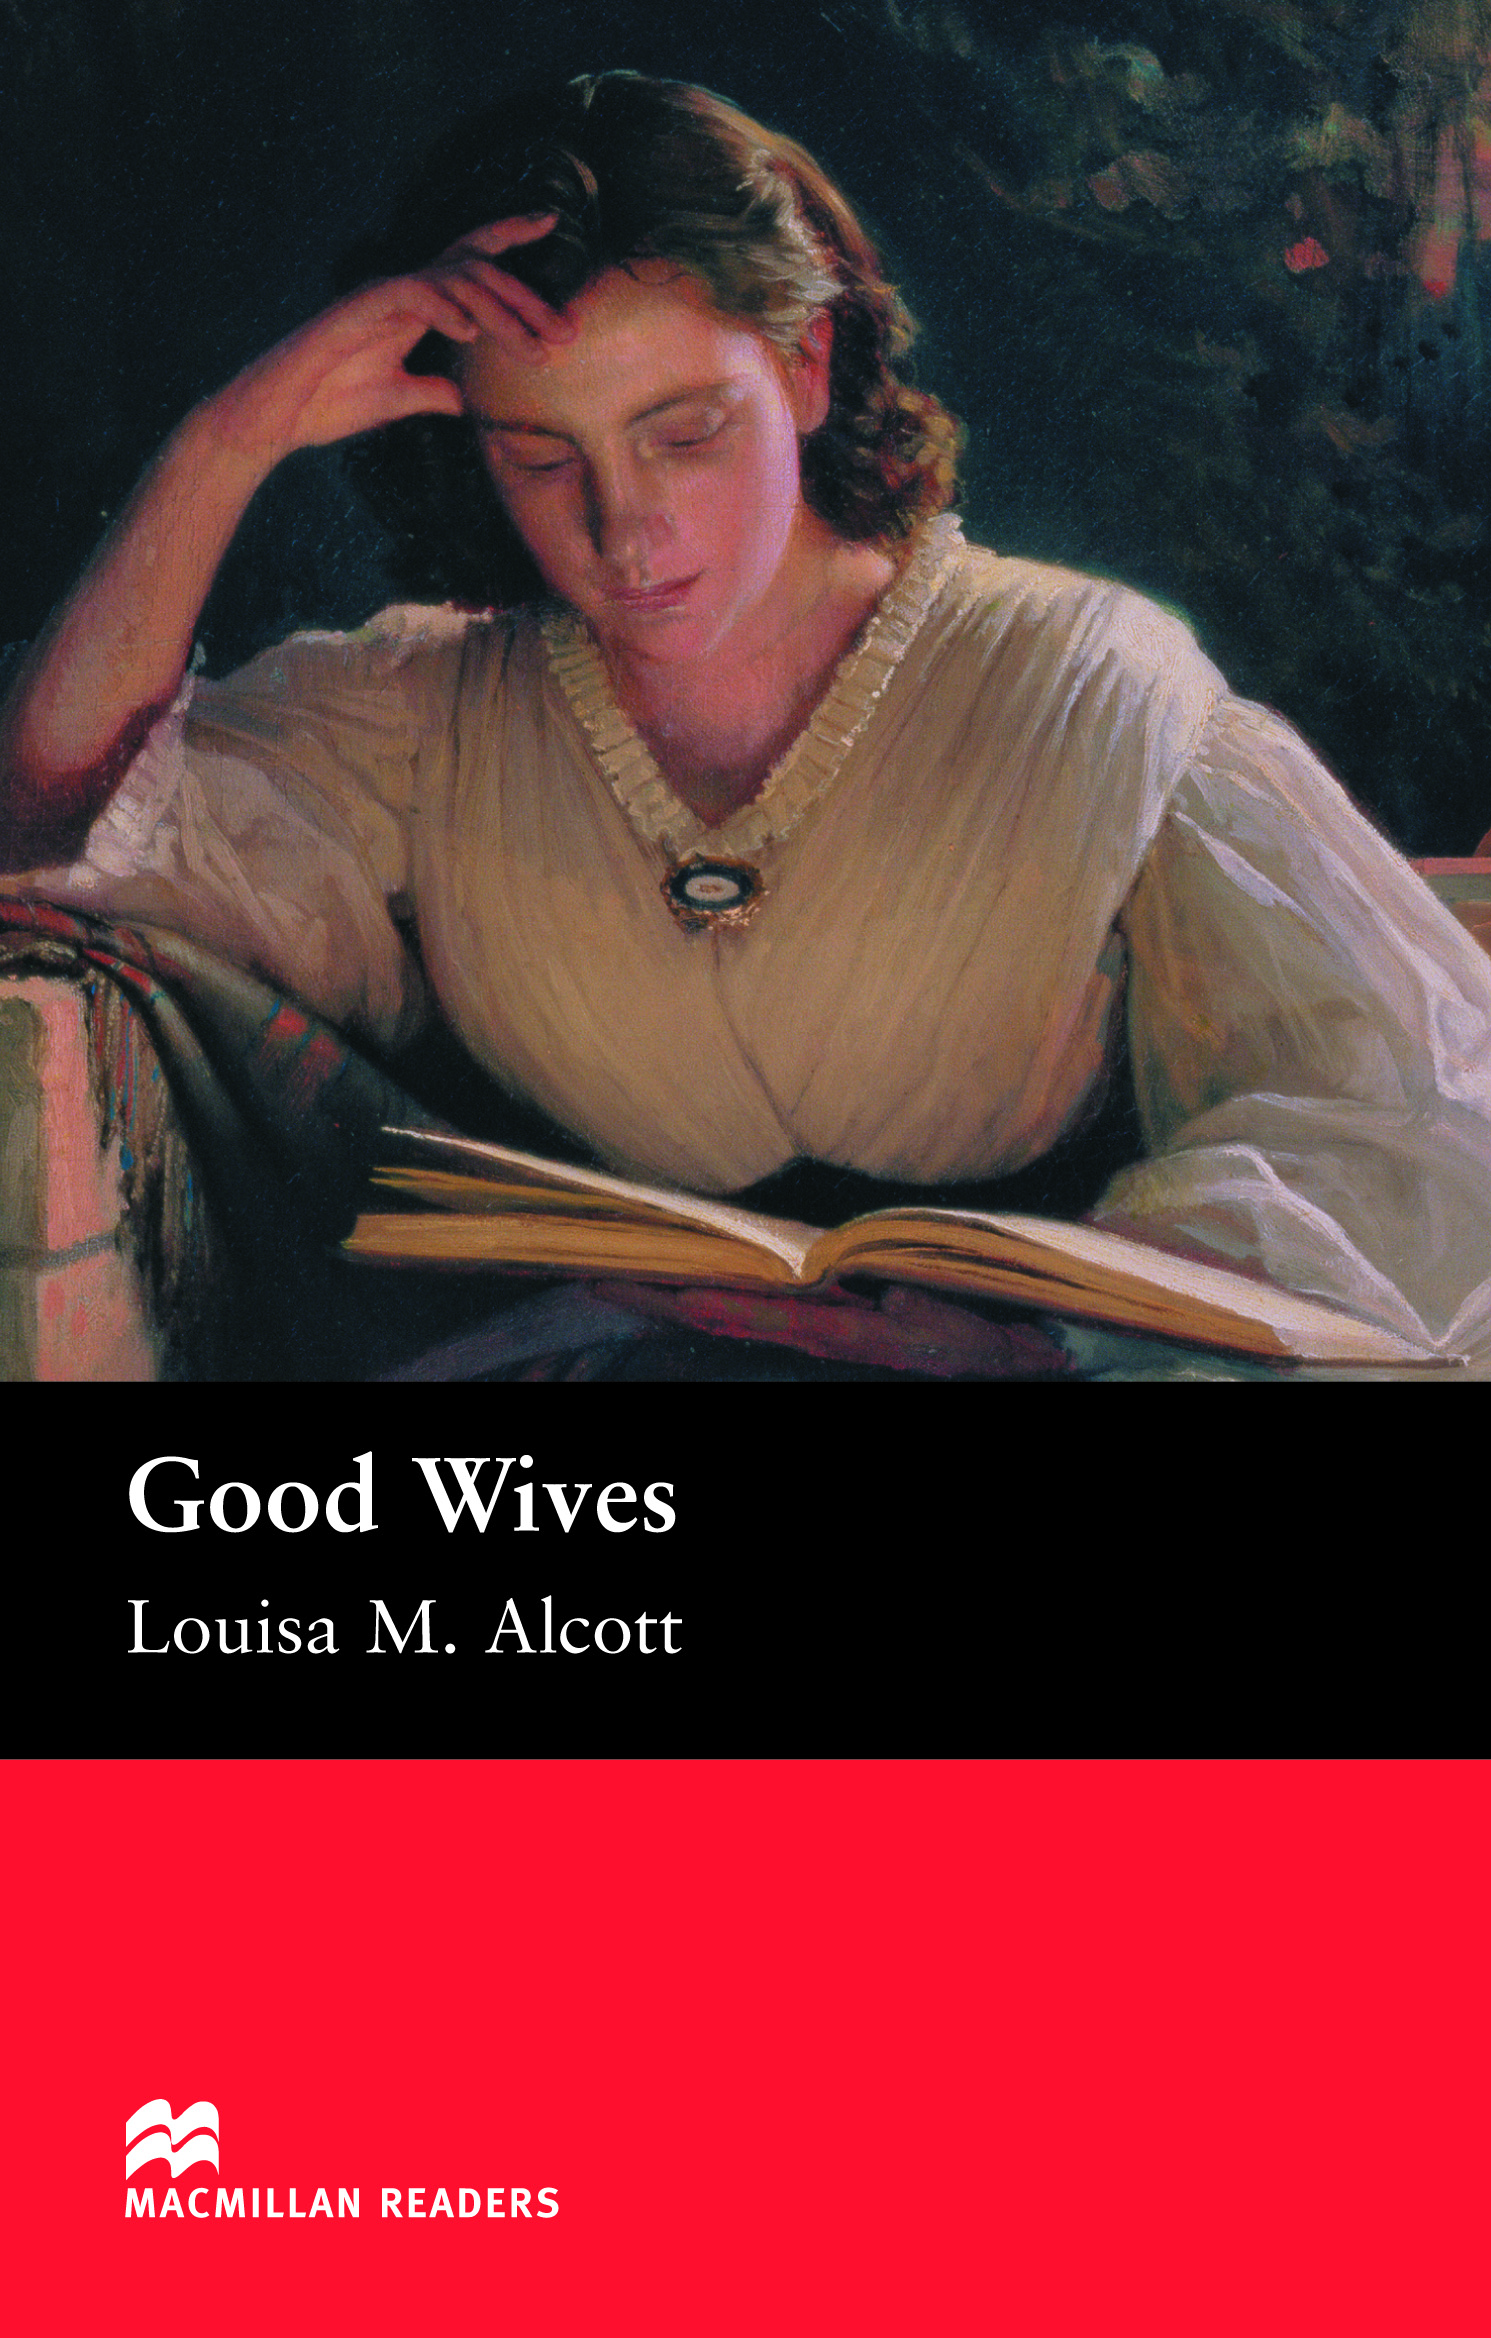 Macmillan Readers: Good Wives